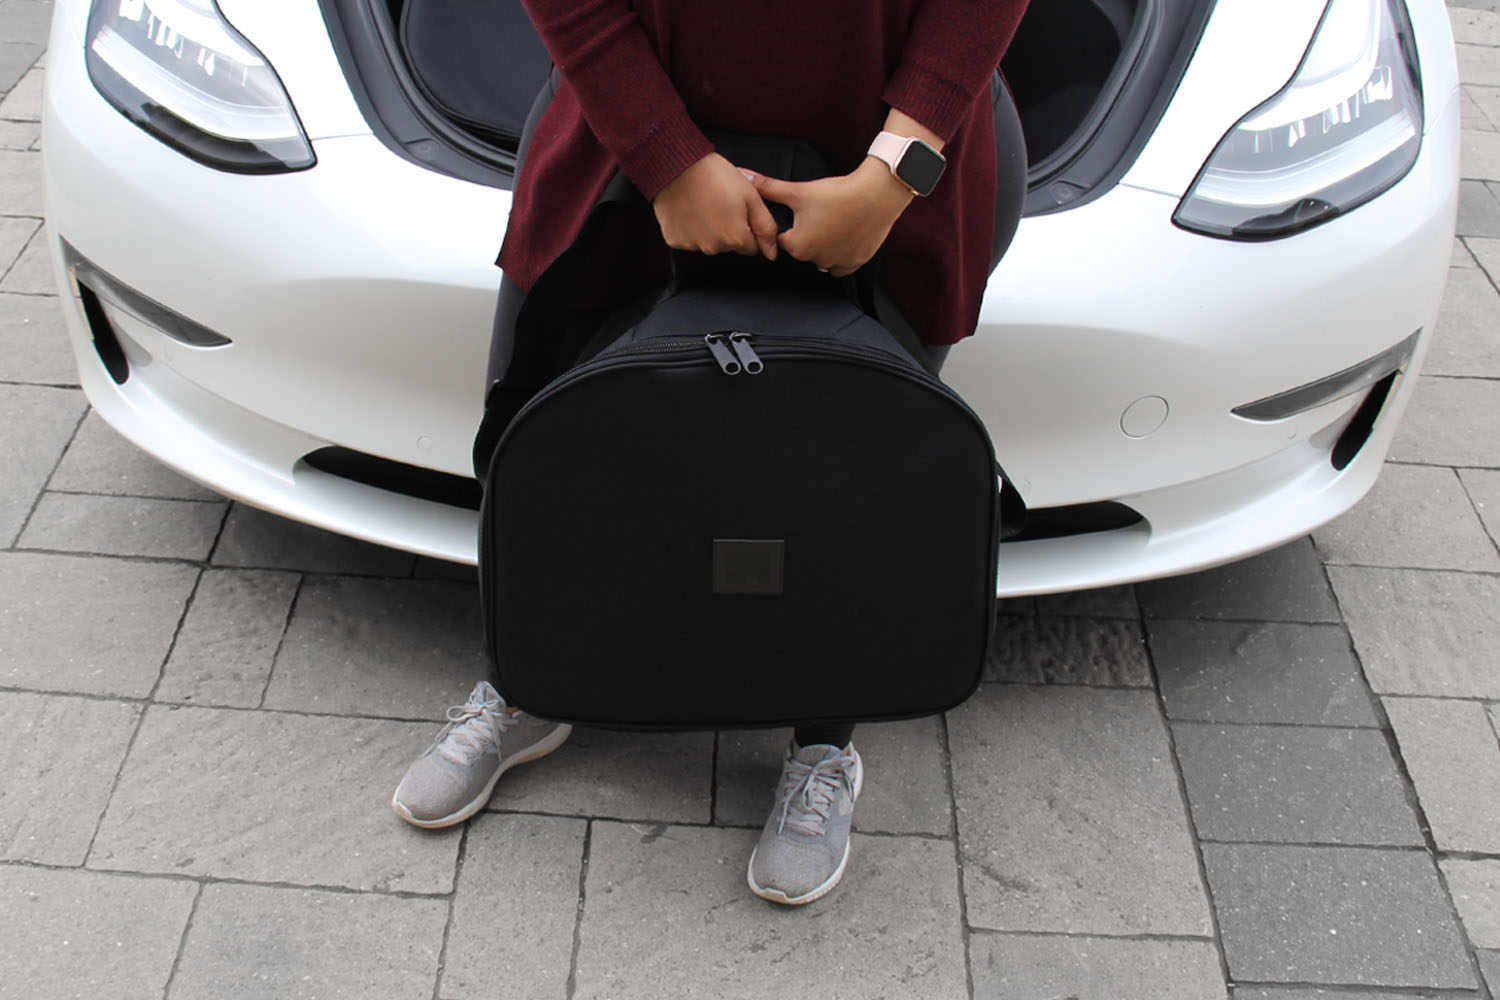 Model 3 luggage bag easy to carry